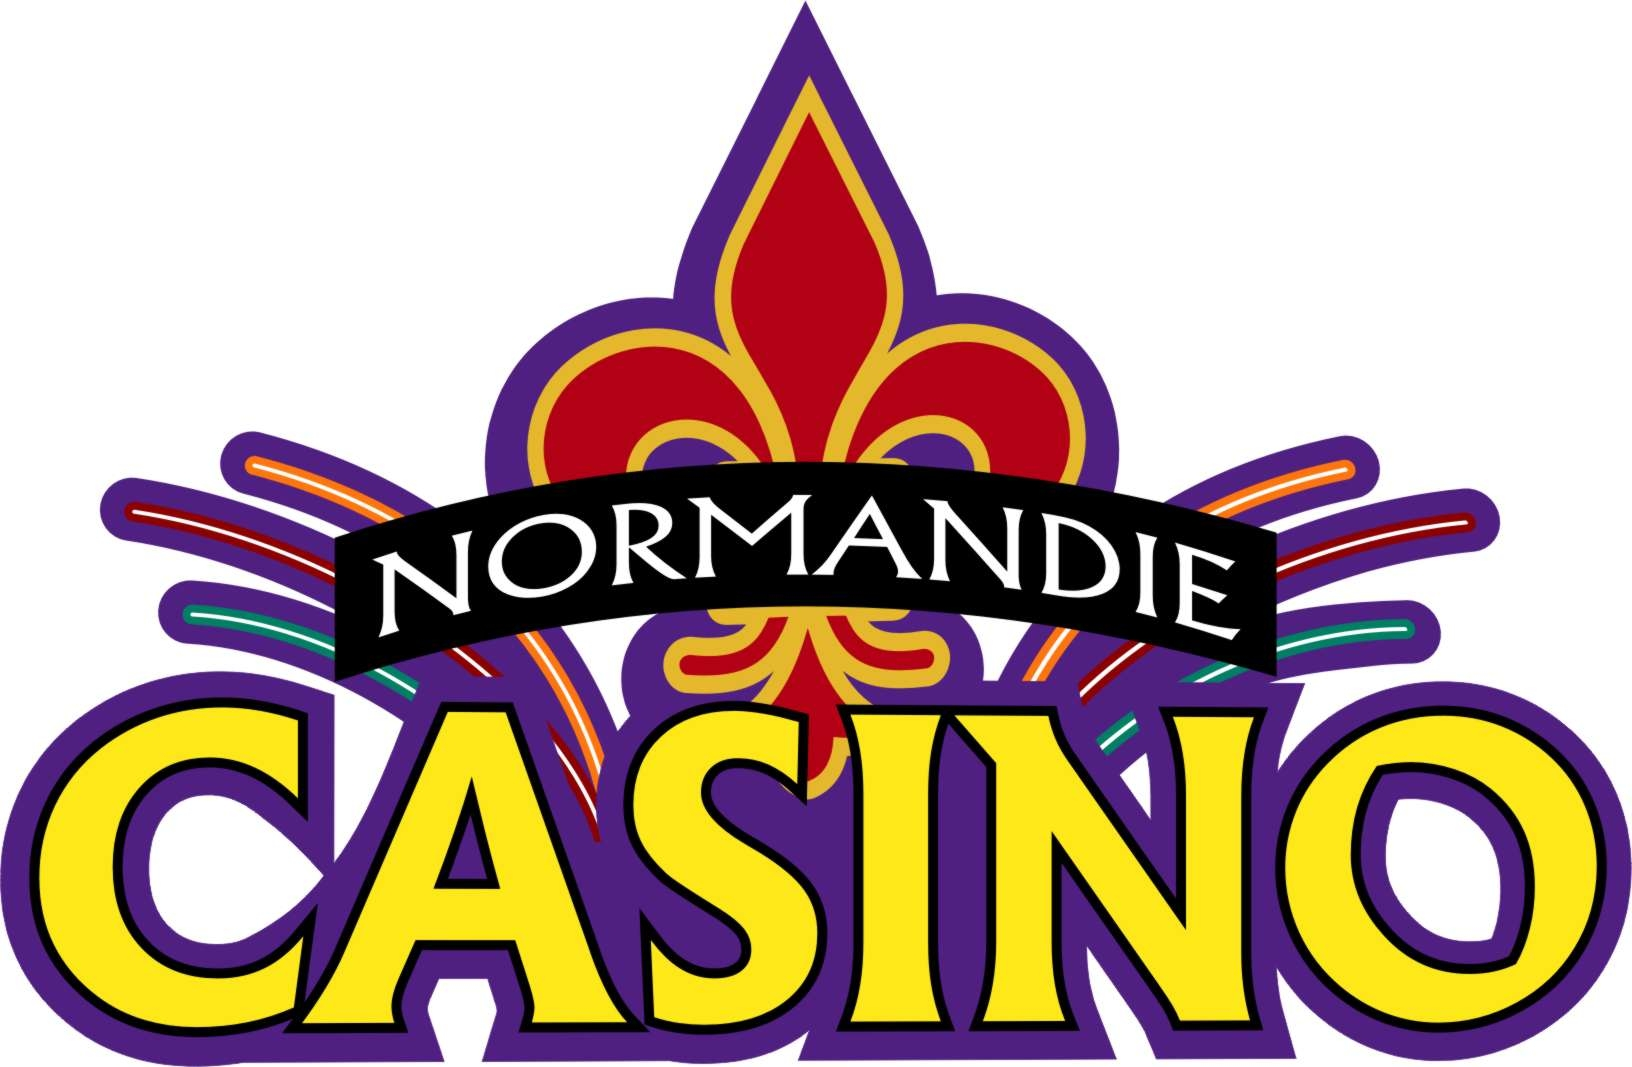 Normandie Casino Los Angeles,